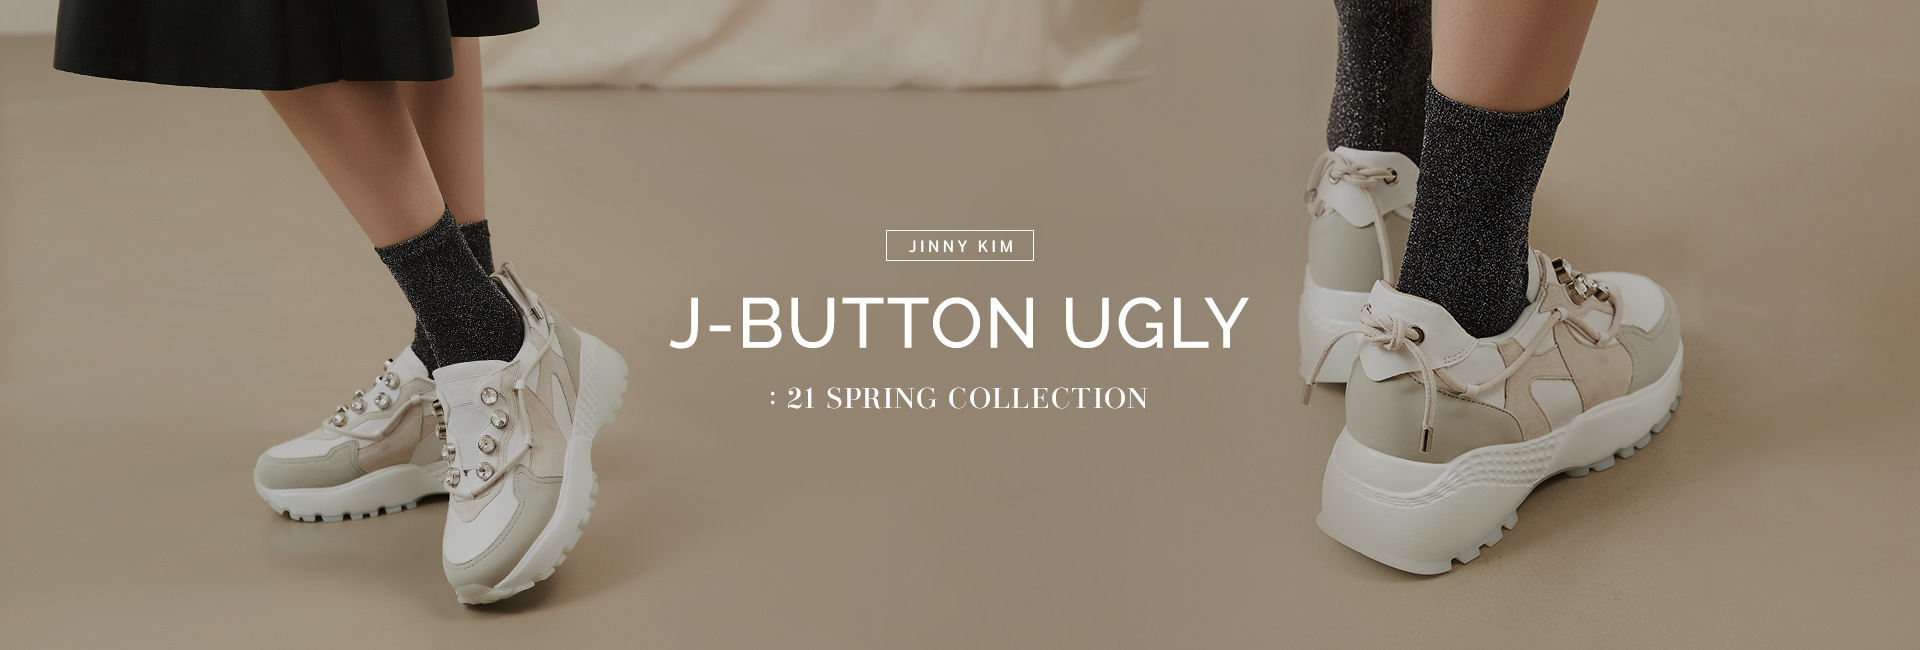 J-button Ugly